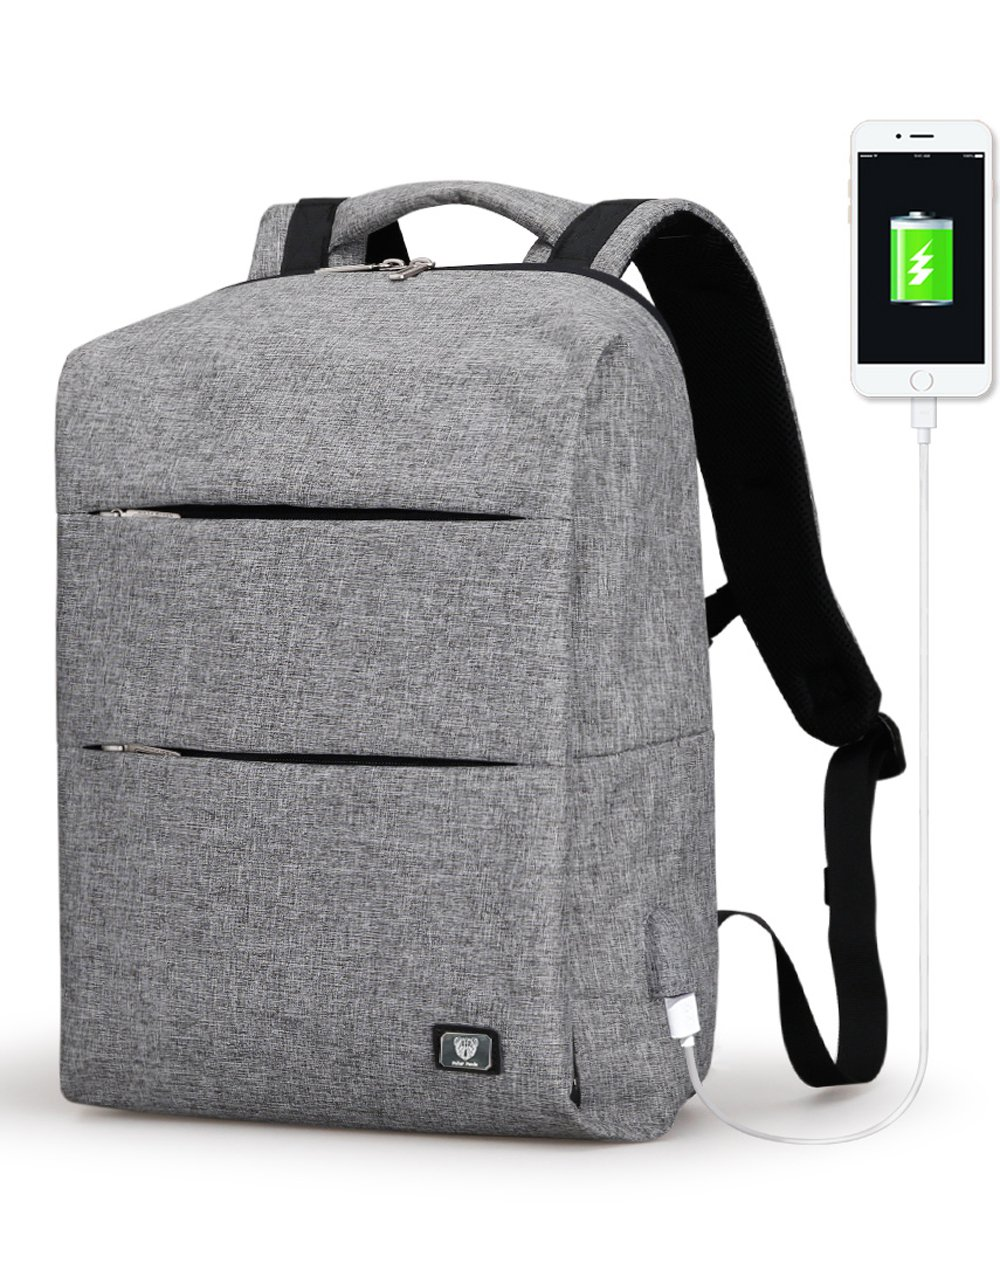 0ca6918078 outlet Anti-theft Laptop Backpack